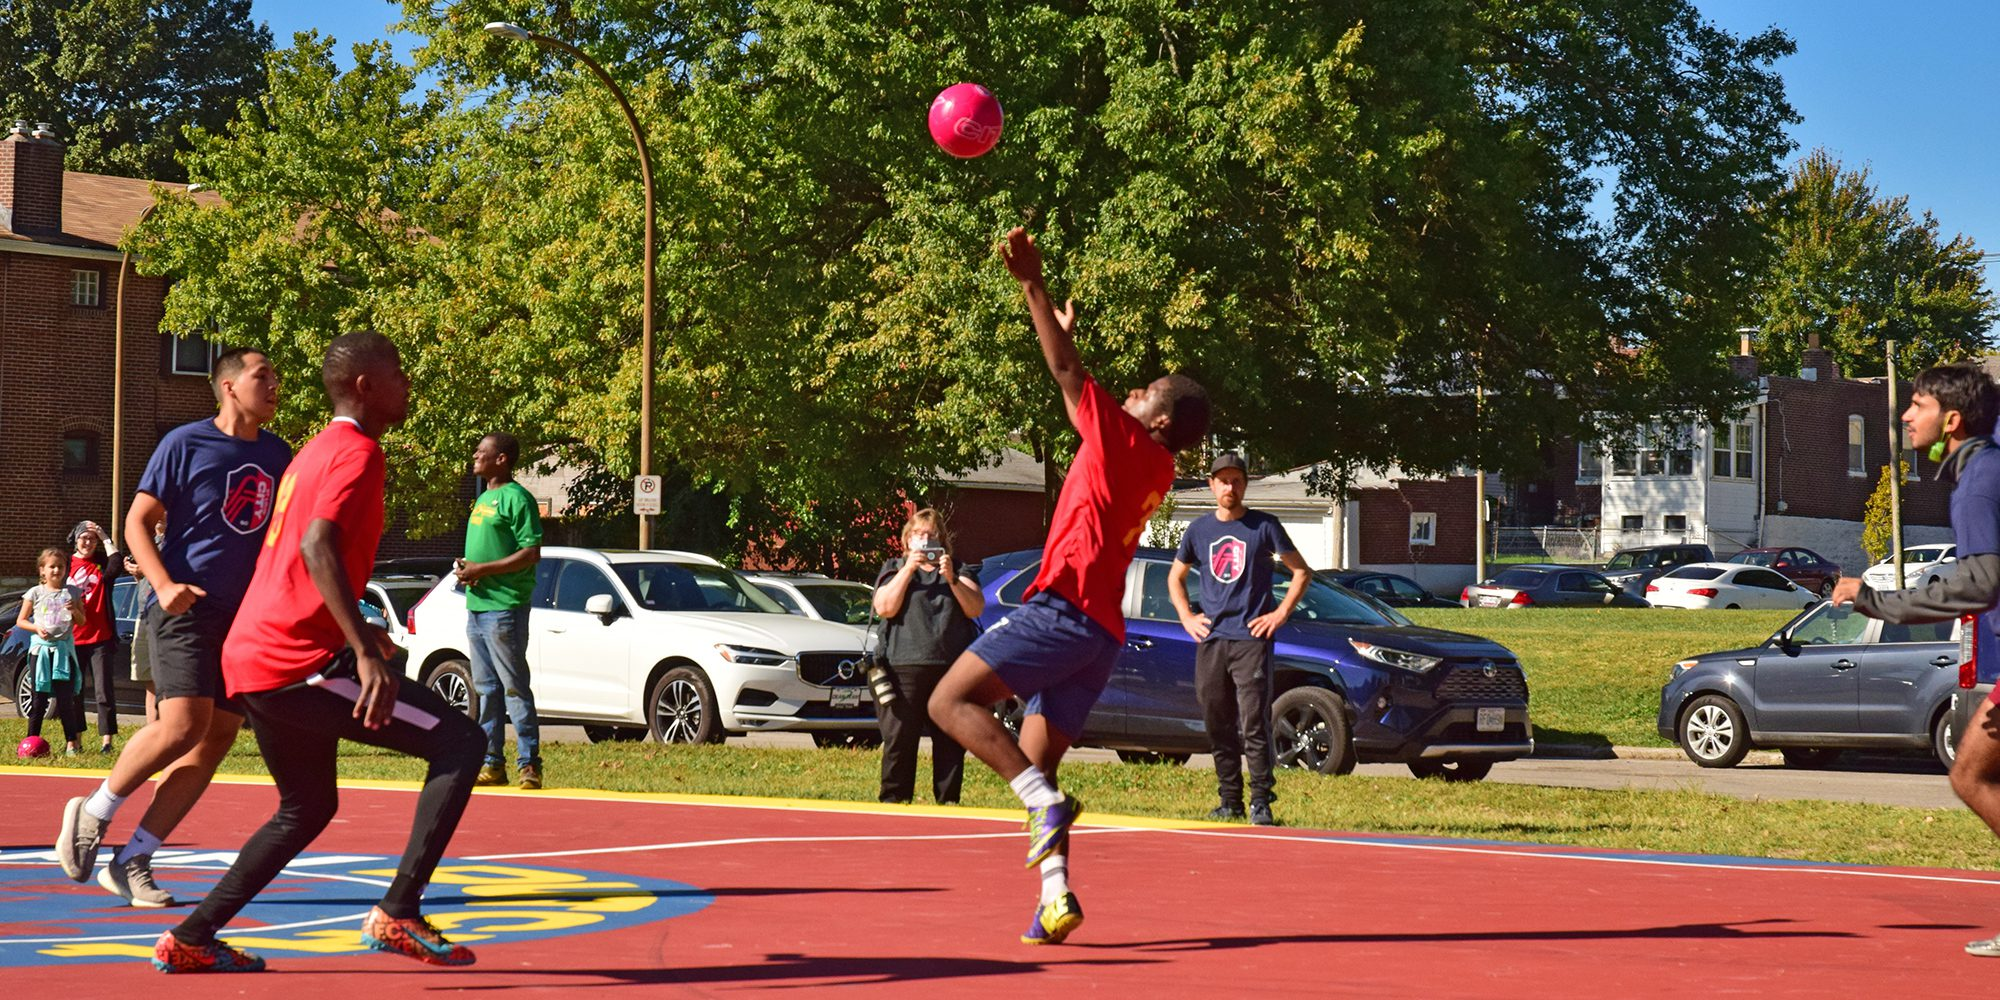 Playing futsal on the new court at Marquette Park in Dutchtown, St. Louis, MO.